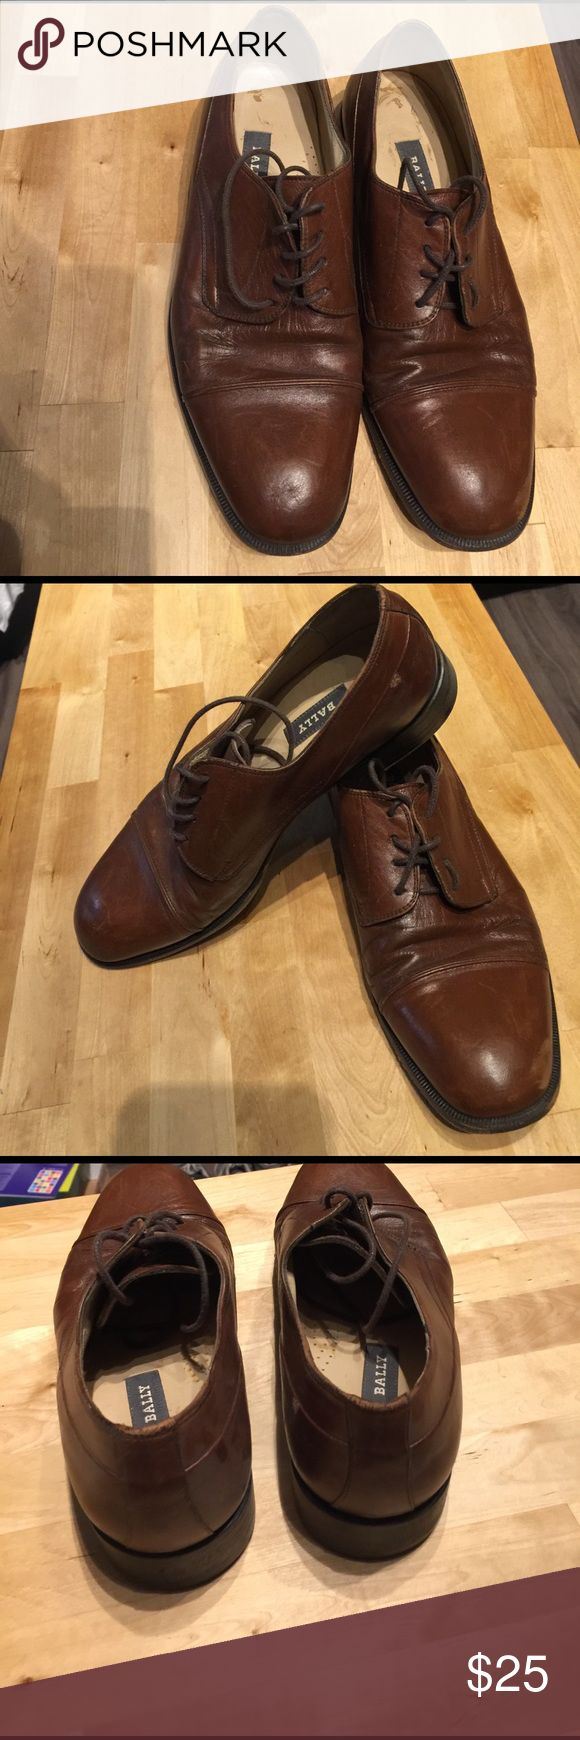 Bally size 9 men's dress shoes Made in Italy , well worn sz 9 , Bally Shoes